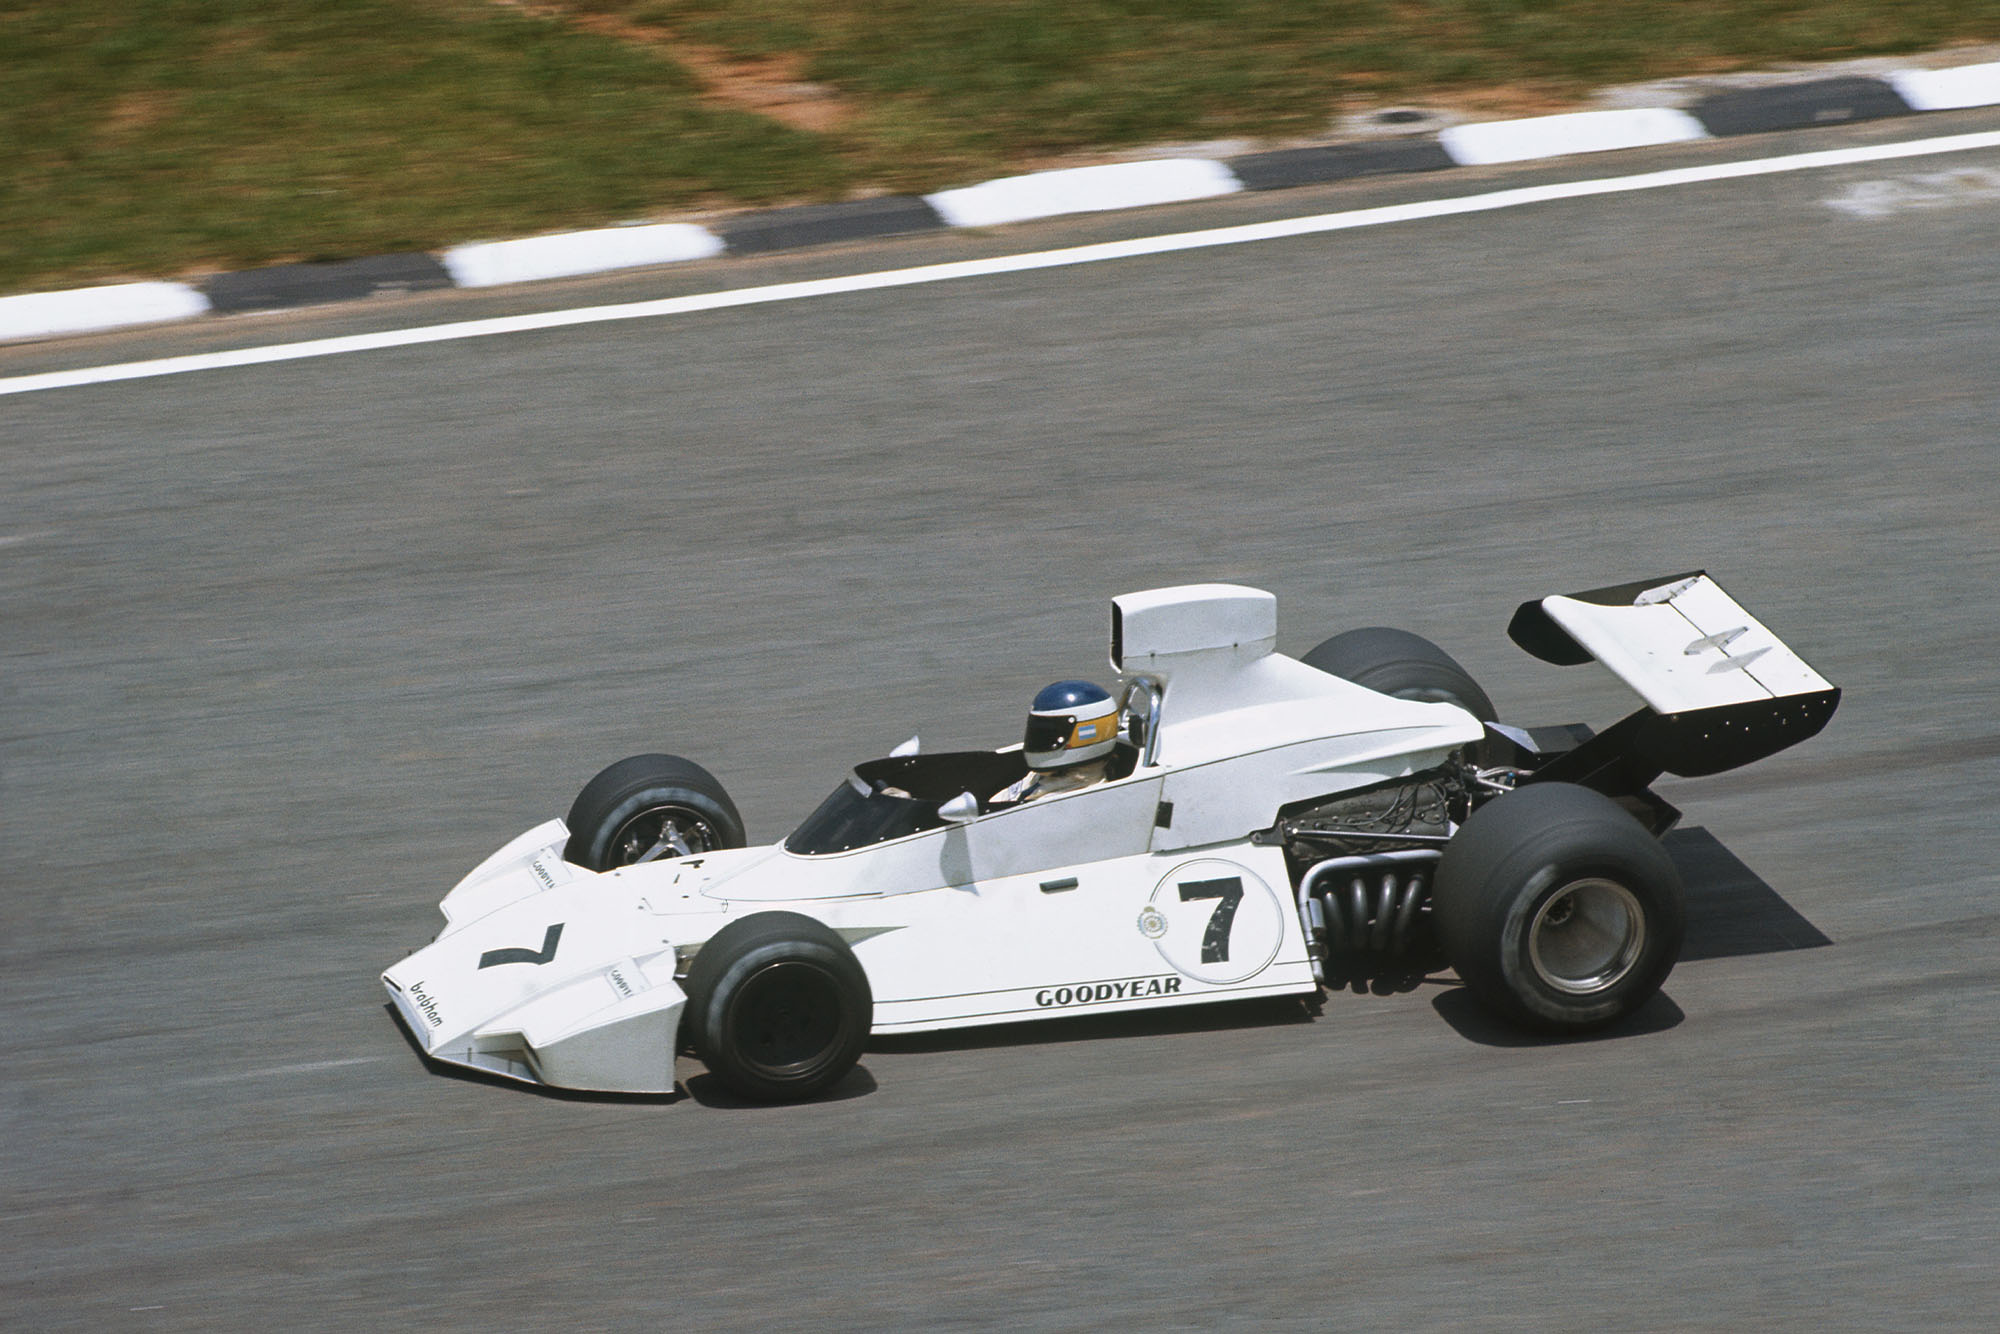 Carlos Reutemann driving for Brabham at the 1974 Brazilian Grand Prix.